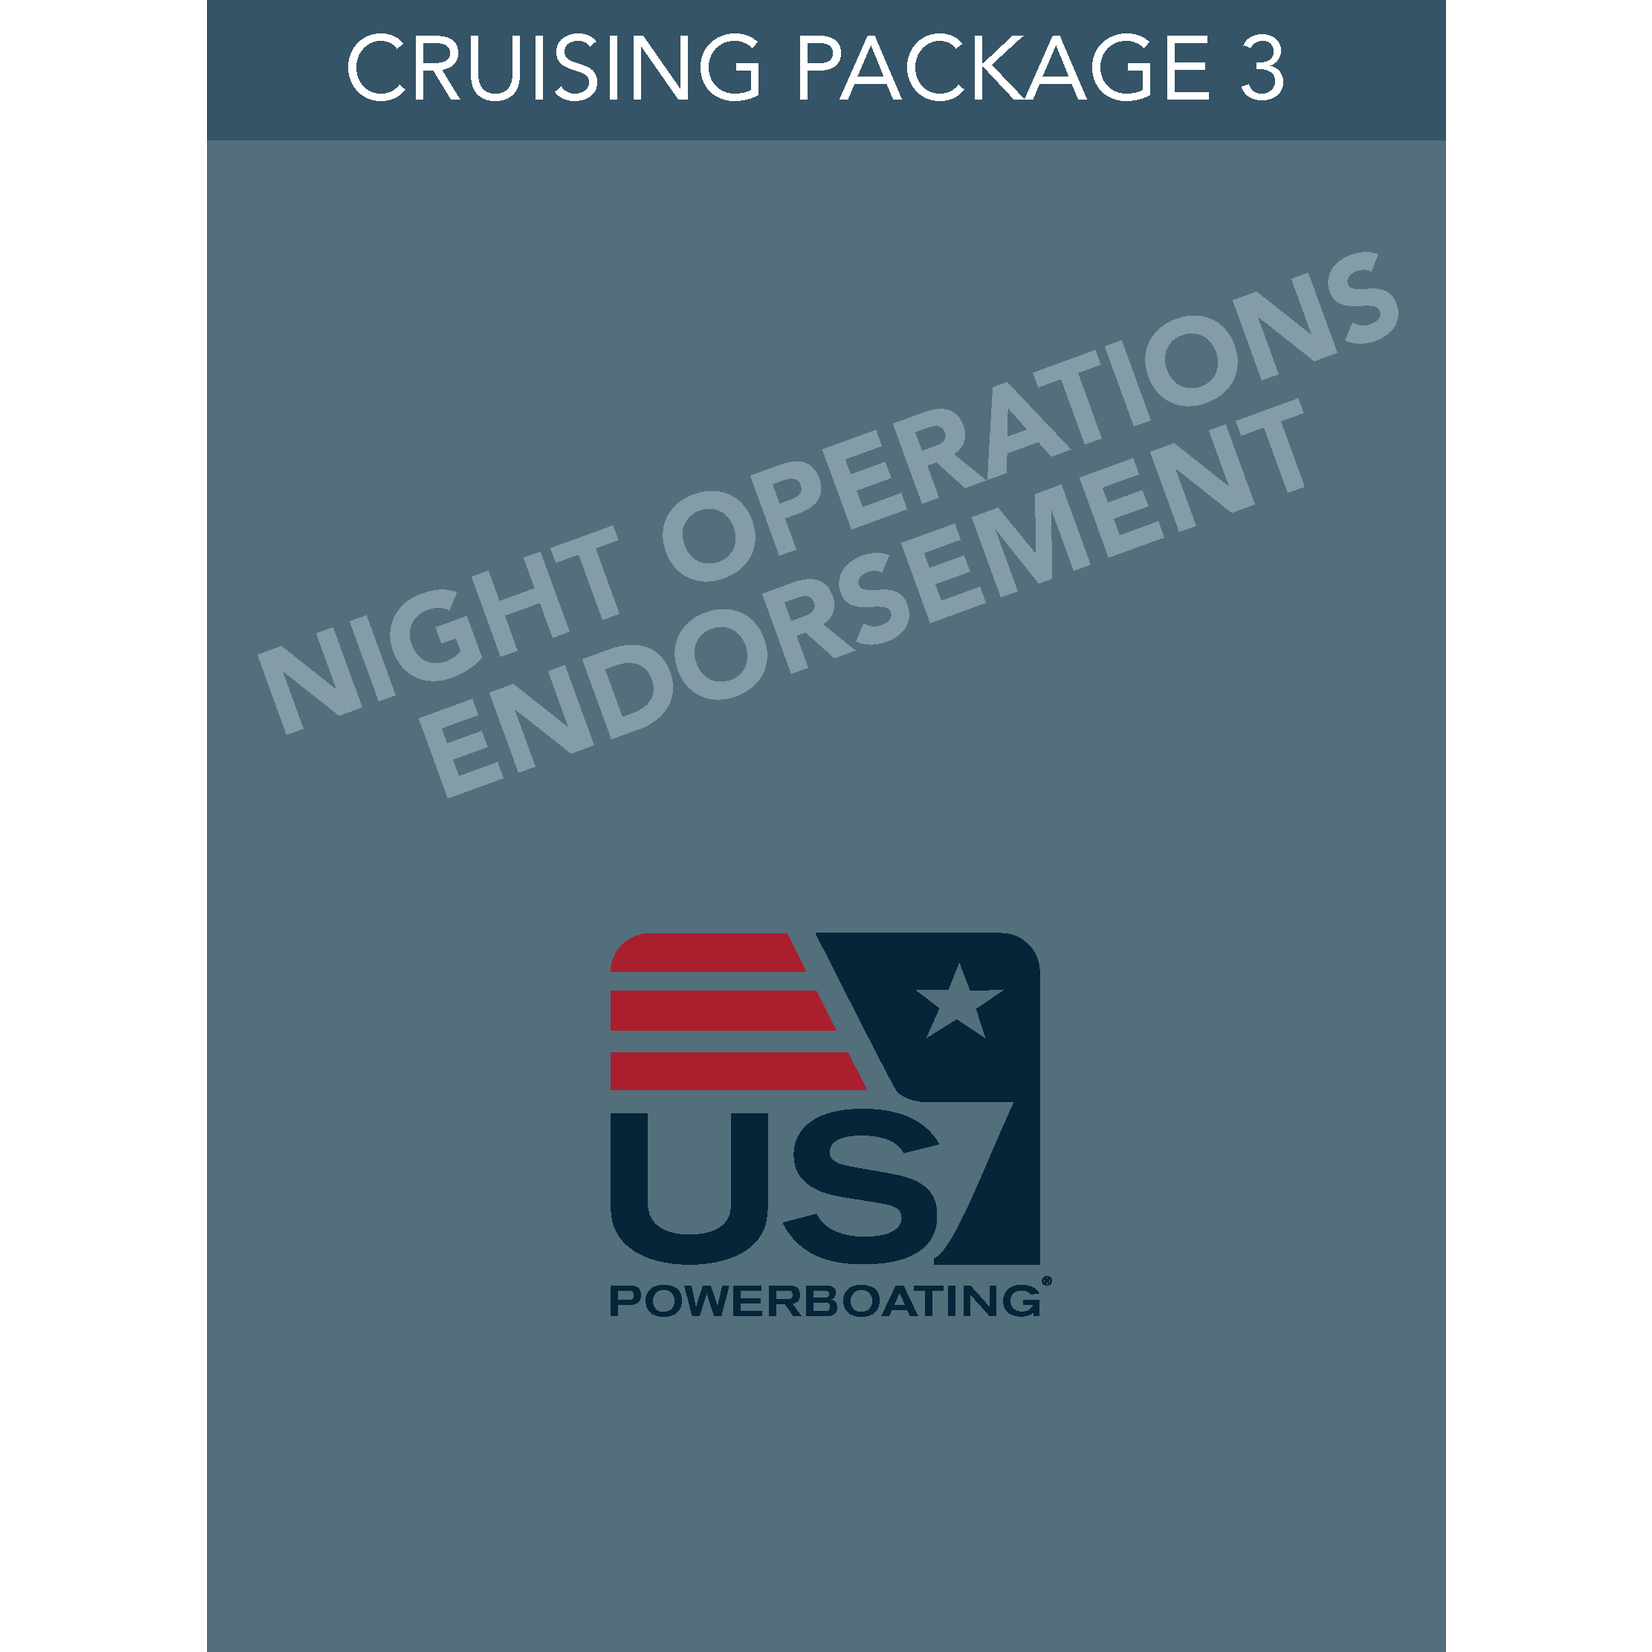 Night Operations Endorsement Package- CP3